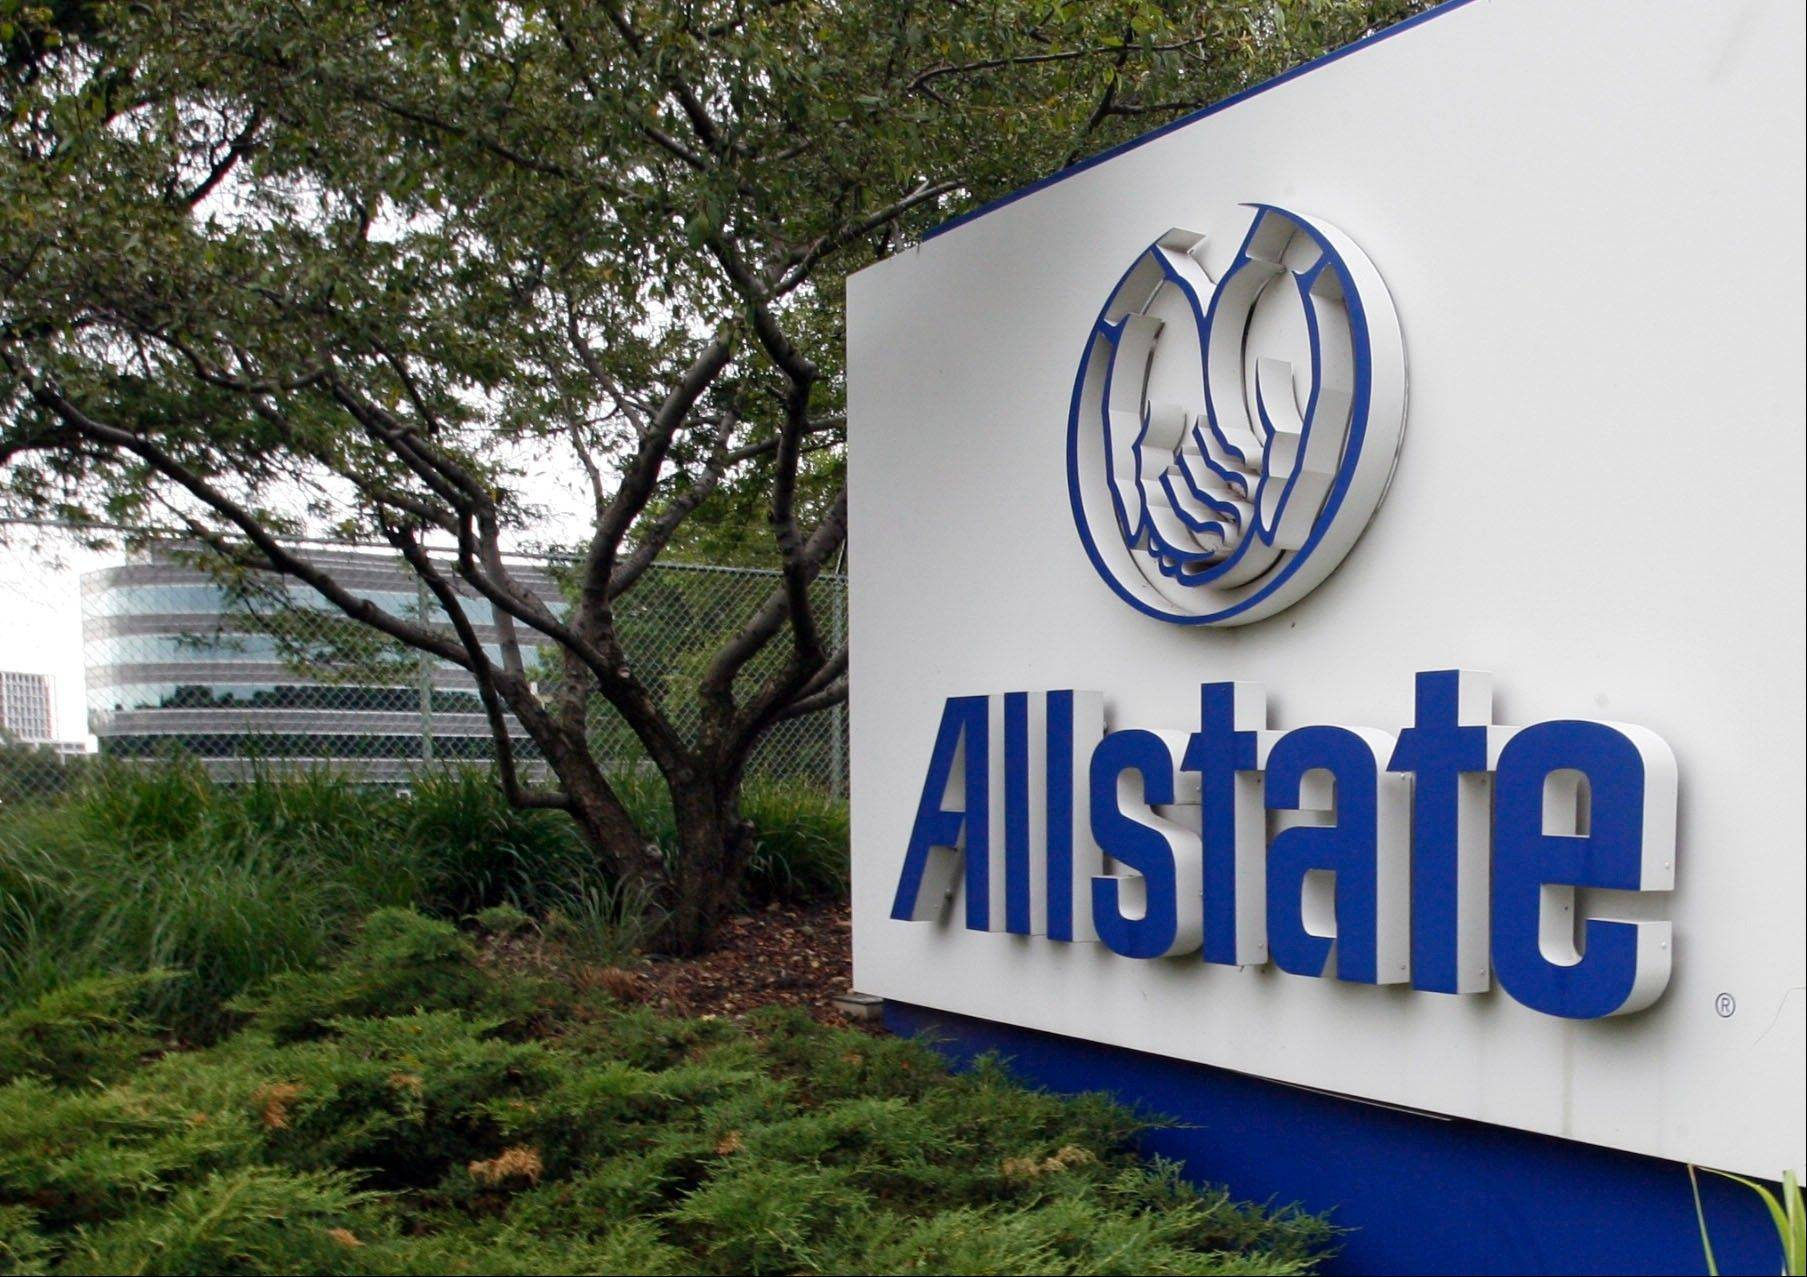 Northbrook-based Allstate Corp., the largest publicly traded U.S. home and auto insurer, will retire about $3 billion in debt as Chief Executive Officer Thomas Wilson takes advantage of near record-low interest rates.